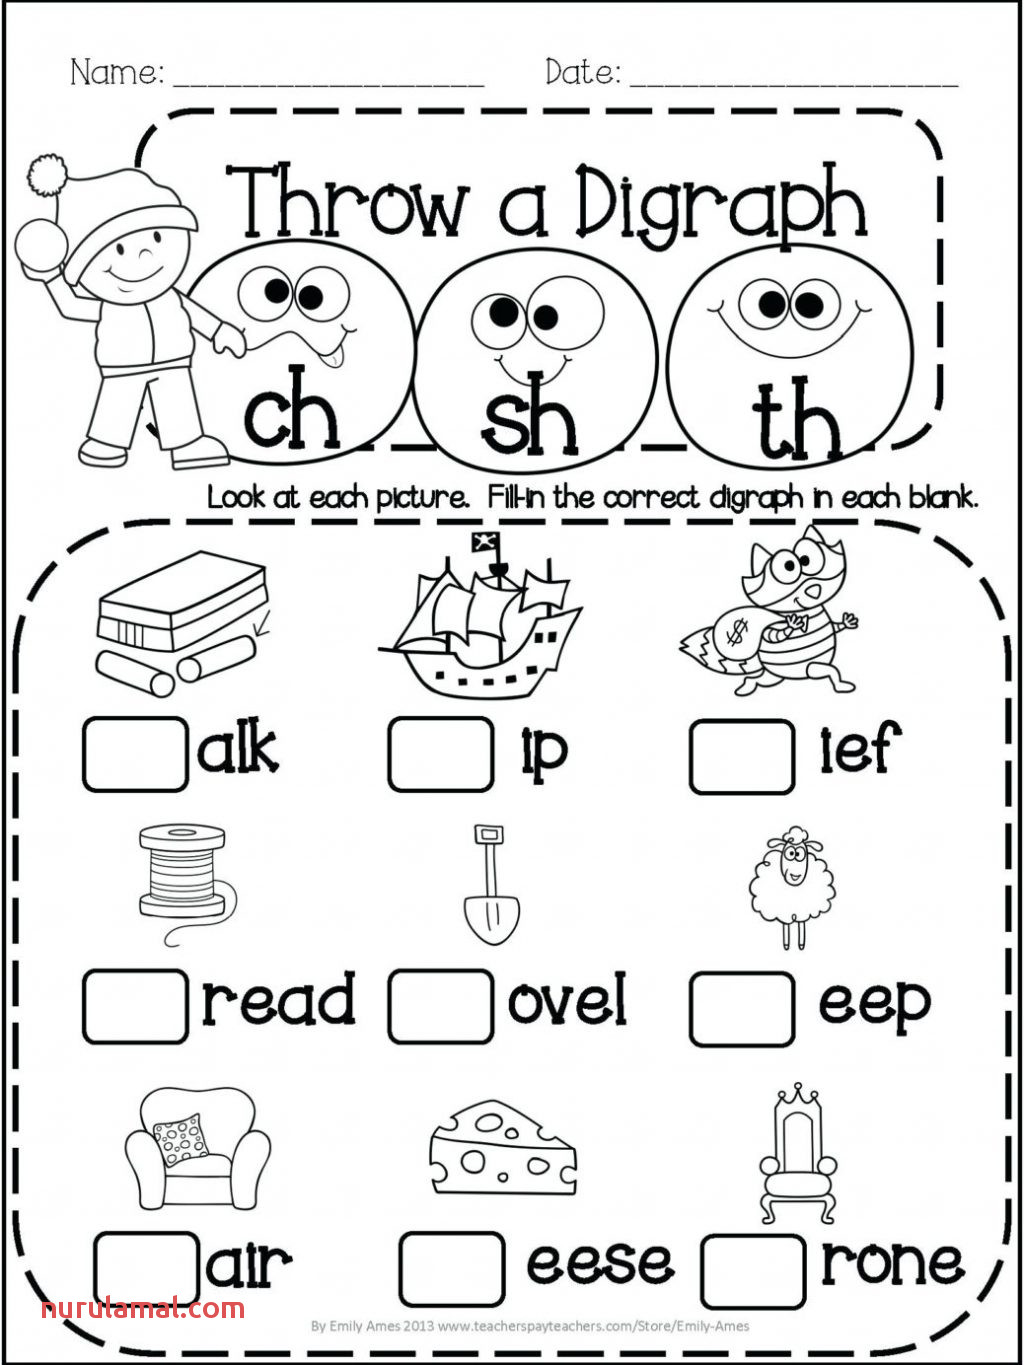 Worksheet Ideas Worksheet Ideas Free Worksheets for First